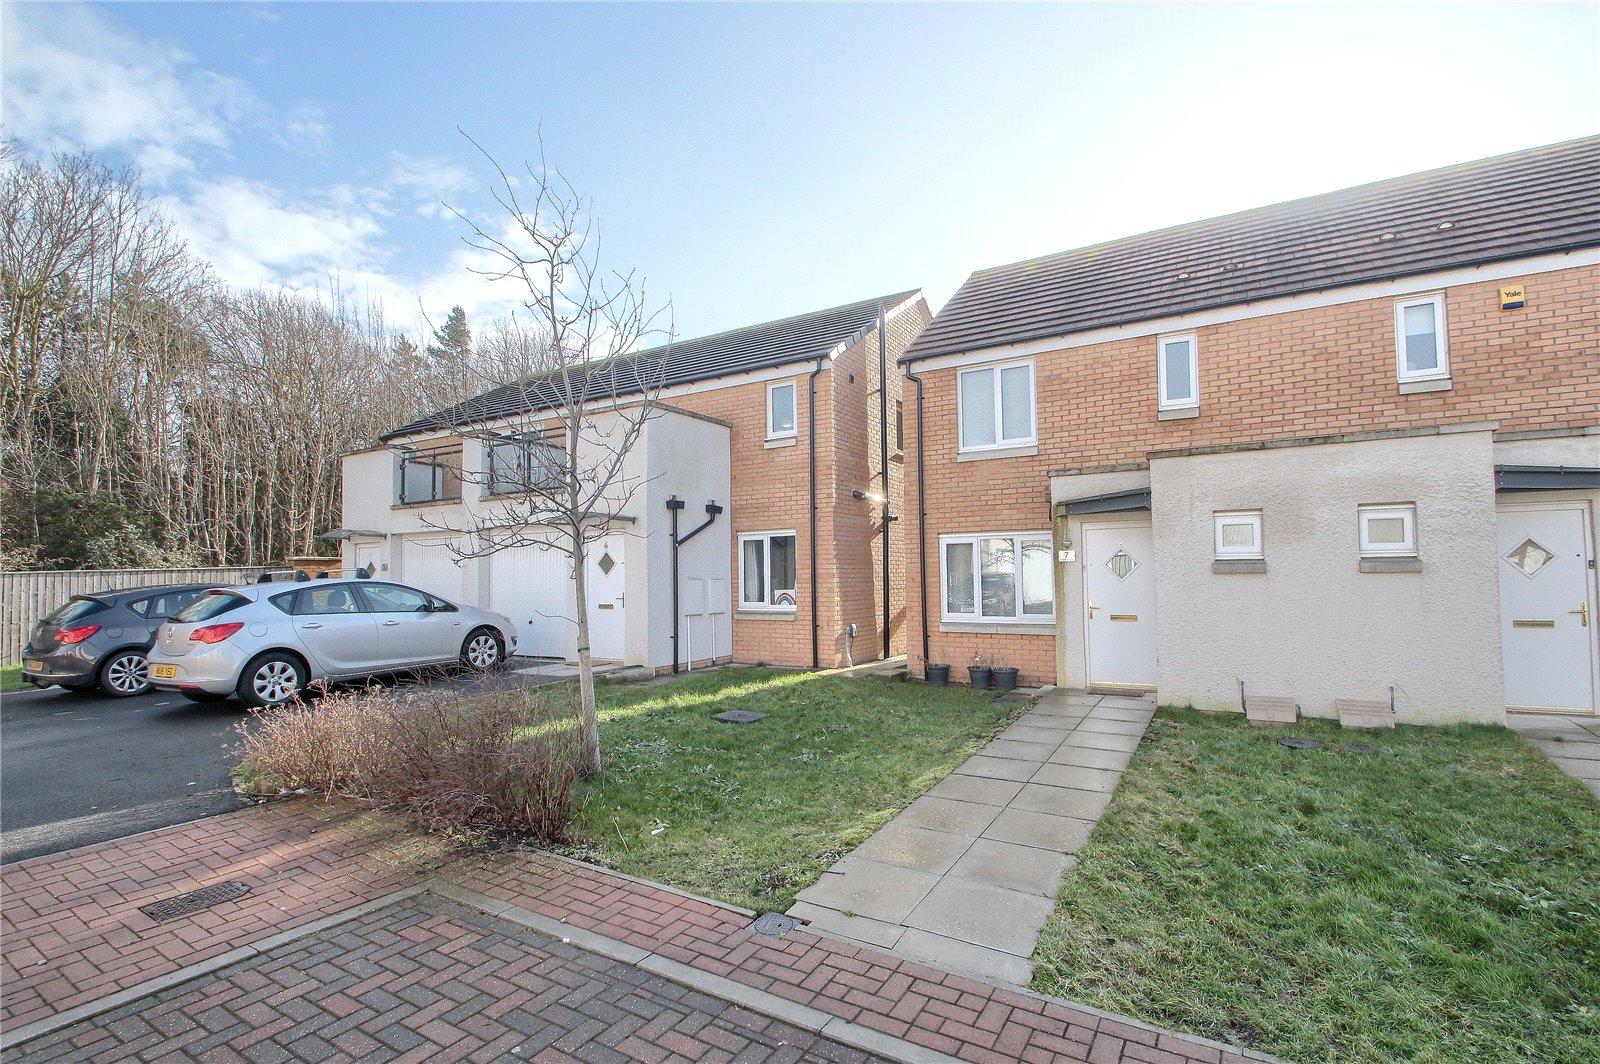 3 bed house for sale in Sleightholme Close, Whitewater Glade 1